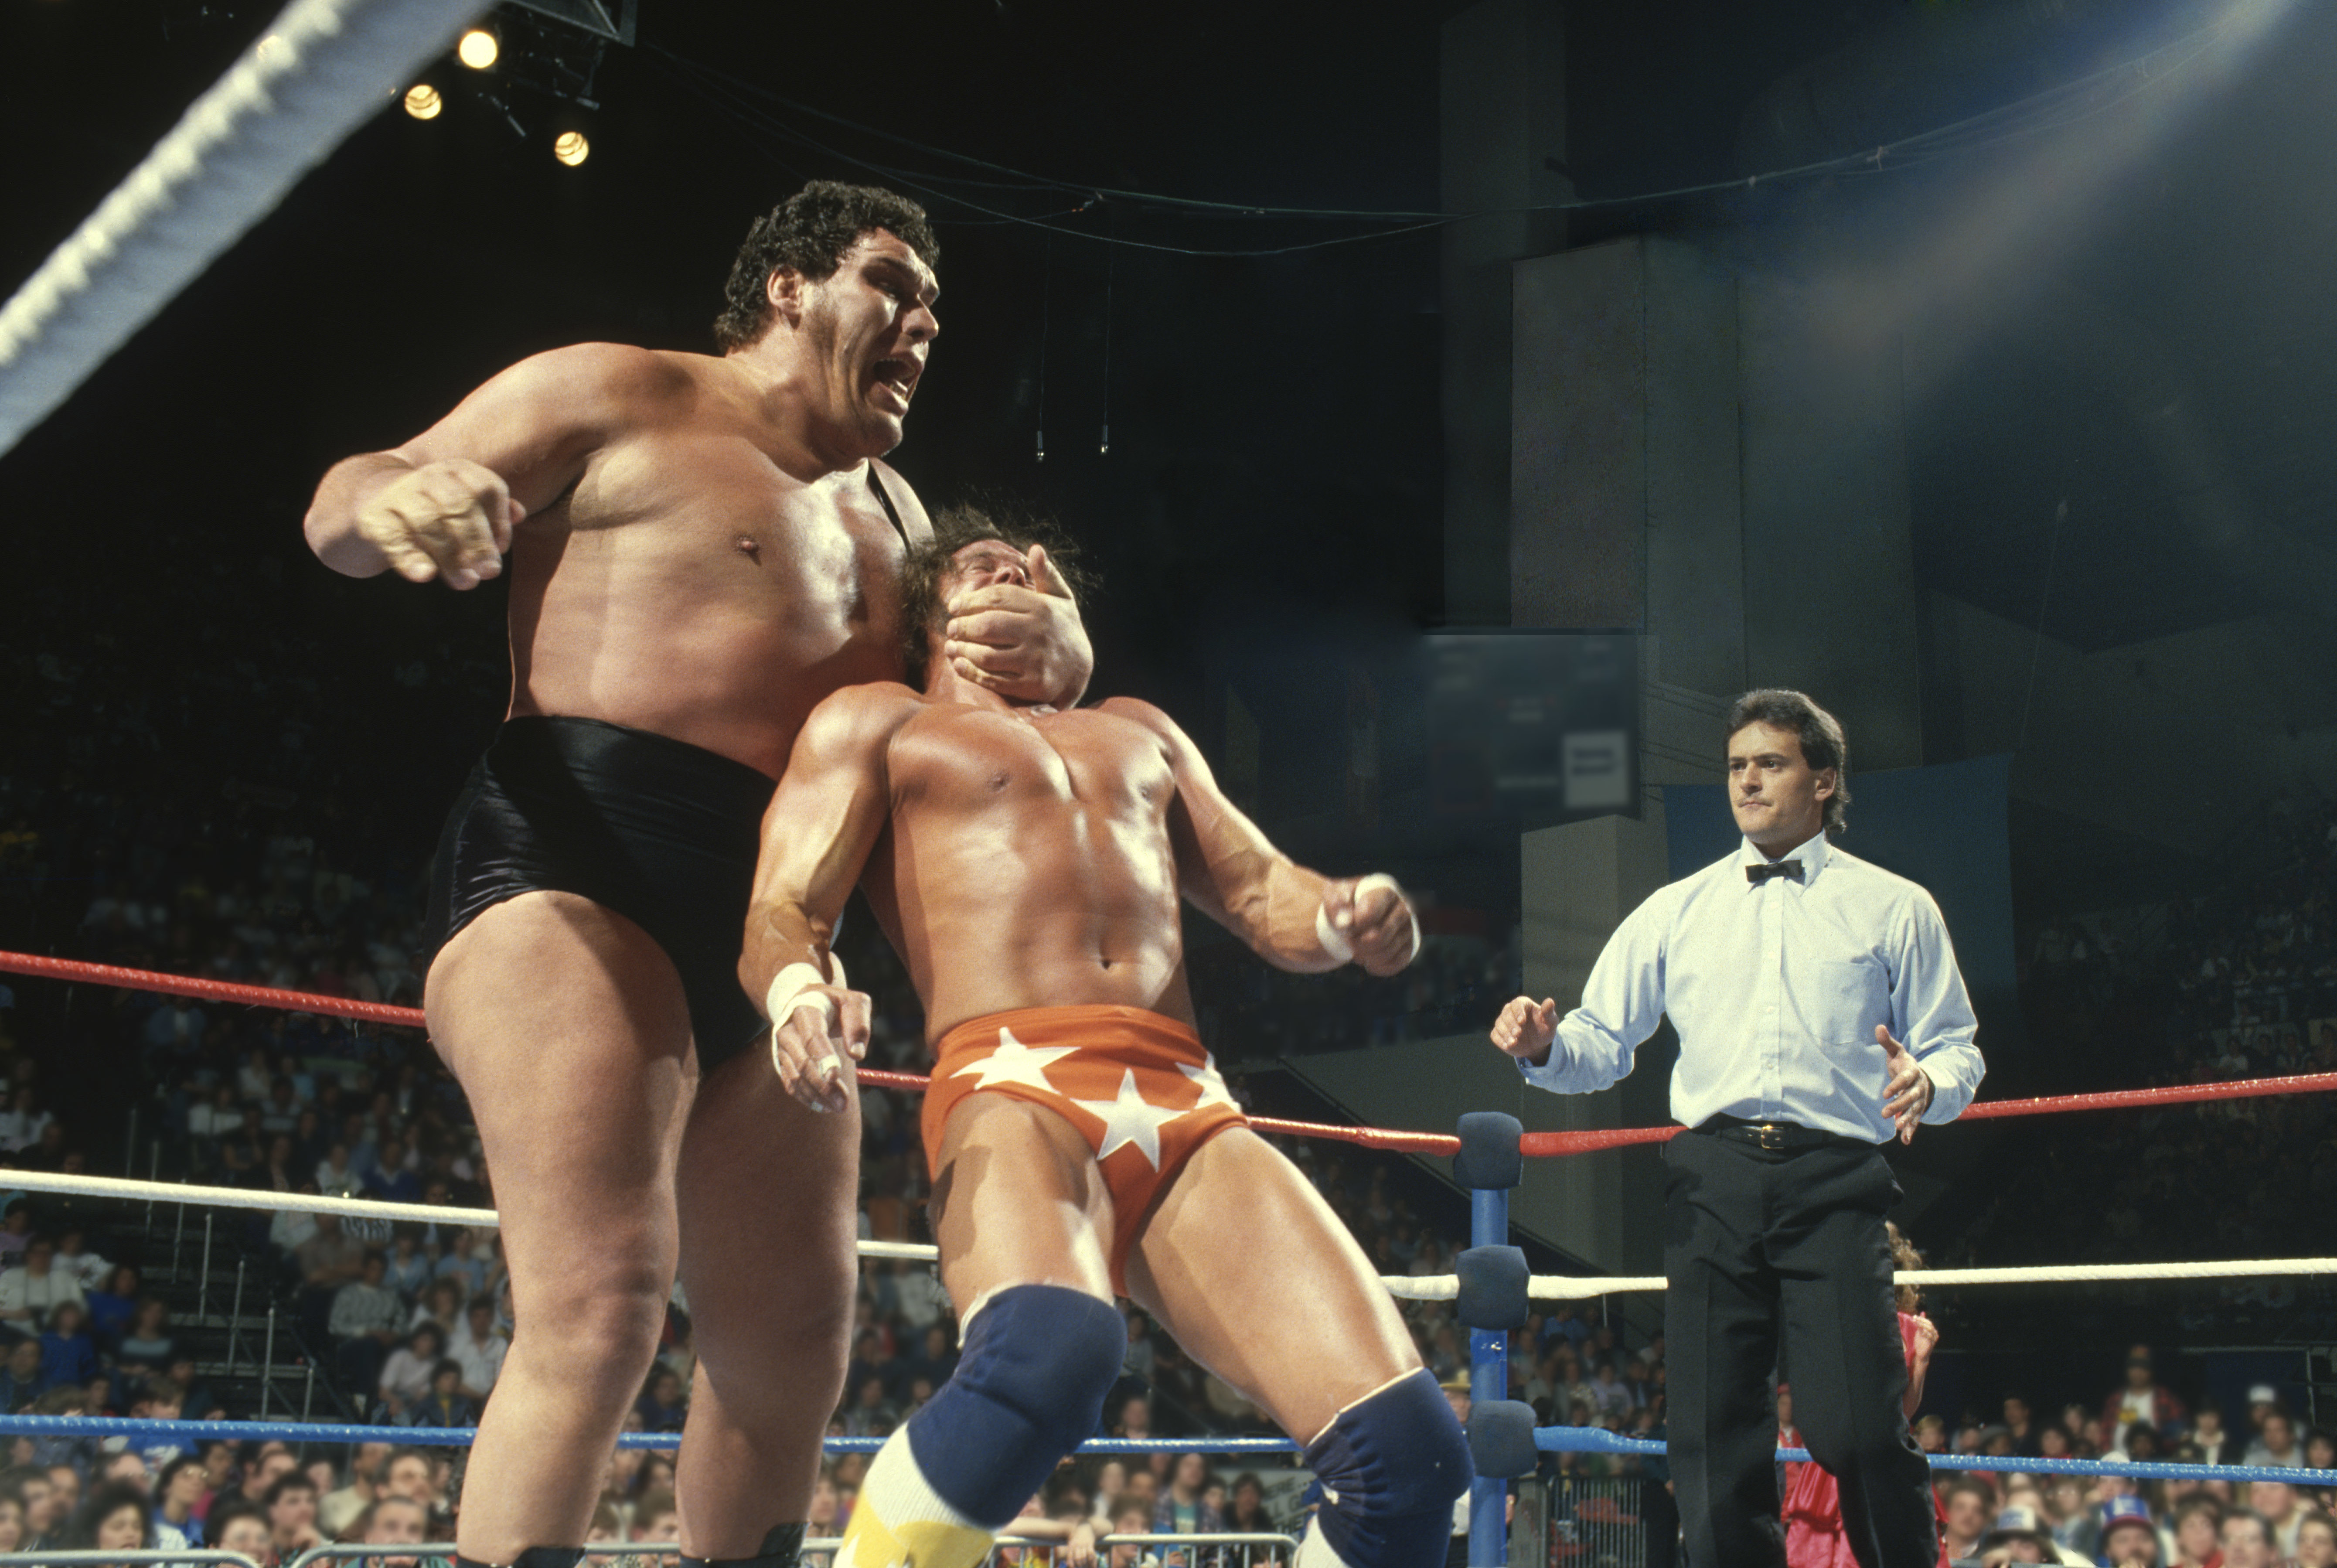 Andre the Giant' HBO Documentary: 10 Things We Learned About